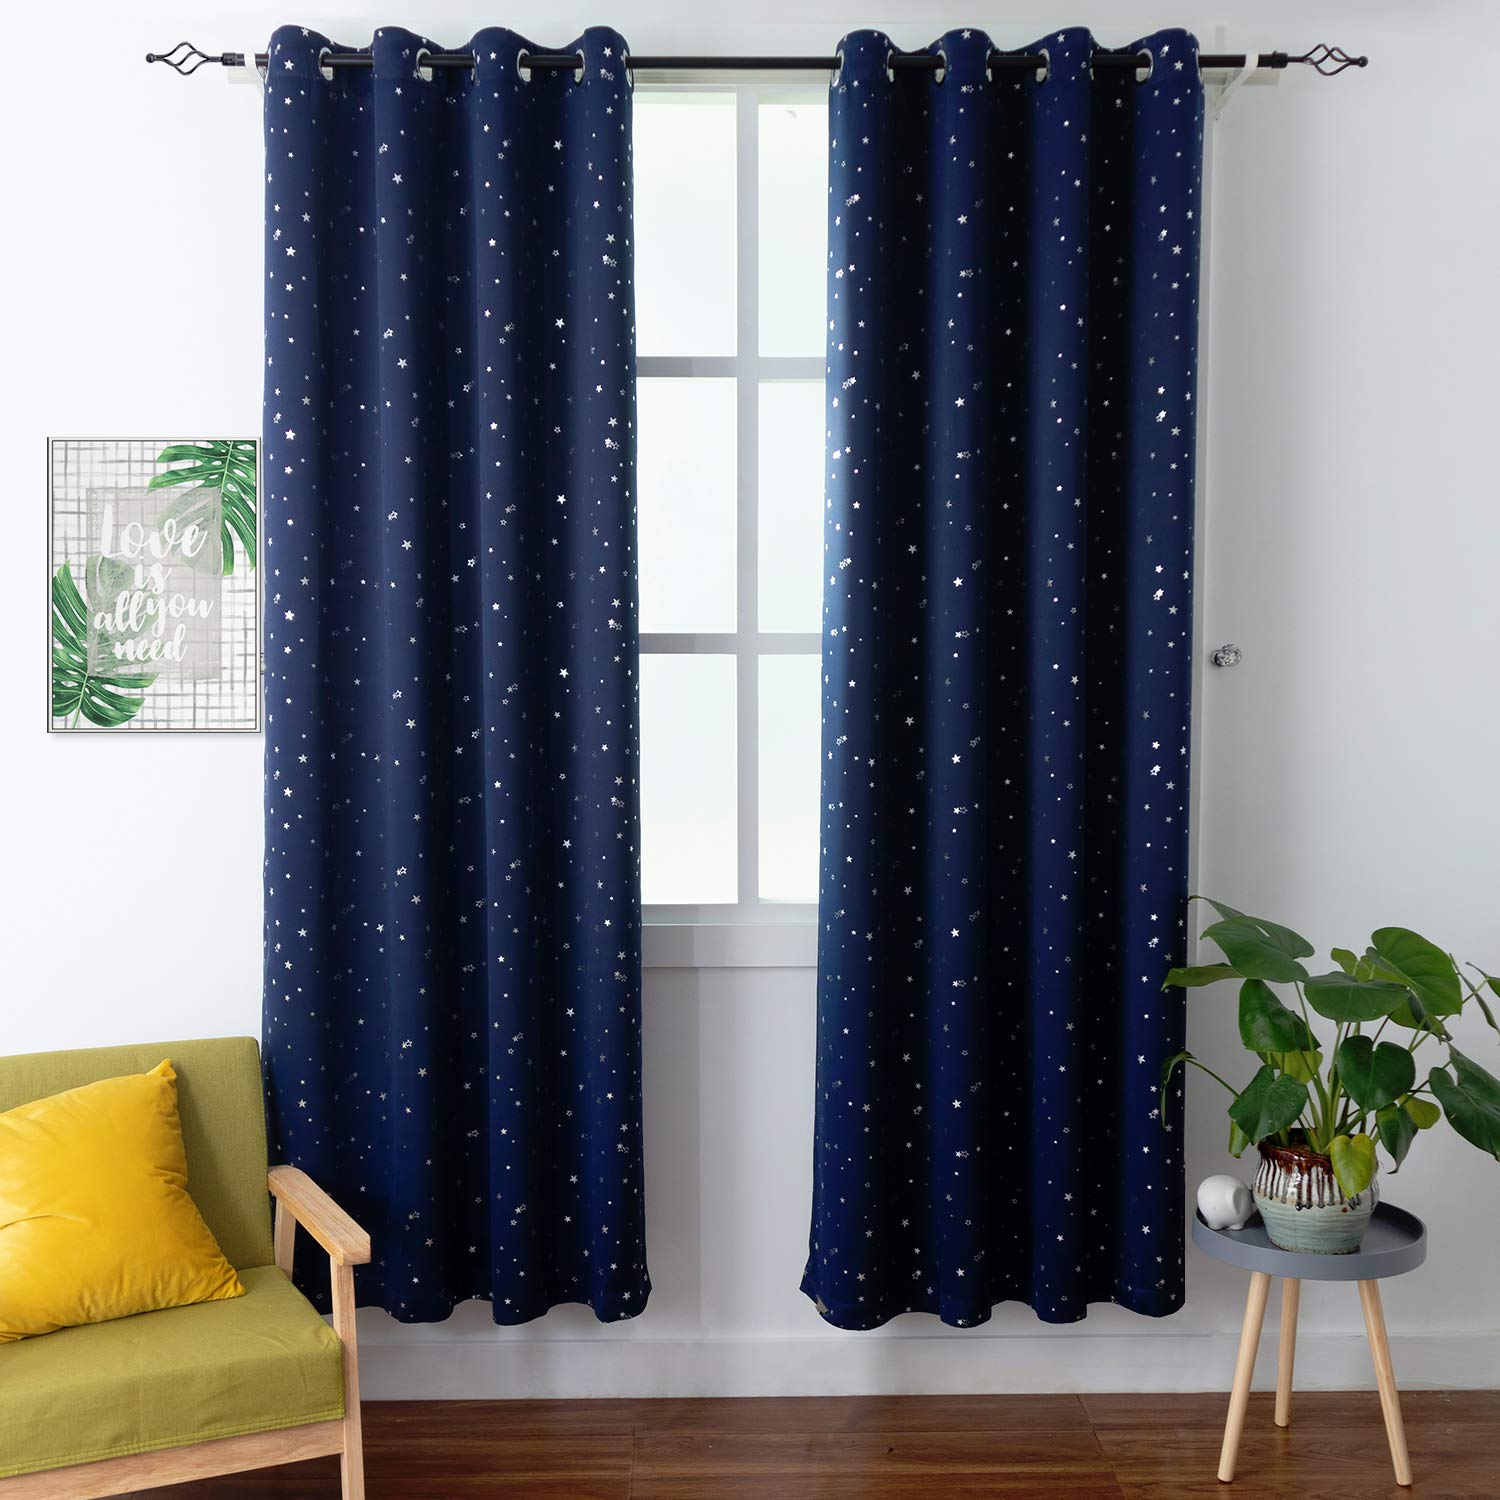 BGment Kids Blackout Curtains for Bedroom - Grommet Thermal Insulated Room Darkening Silver Star Printed Curtains for Living Room, Set of 2 Panels (52 x 84 Inch, Navy Blue)